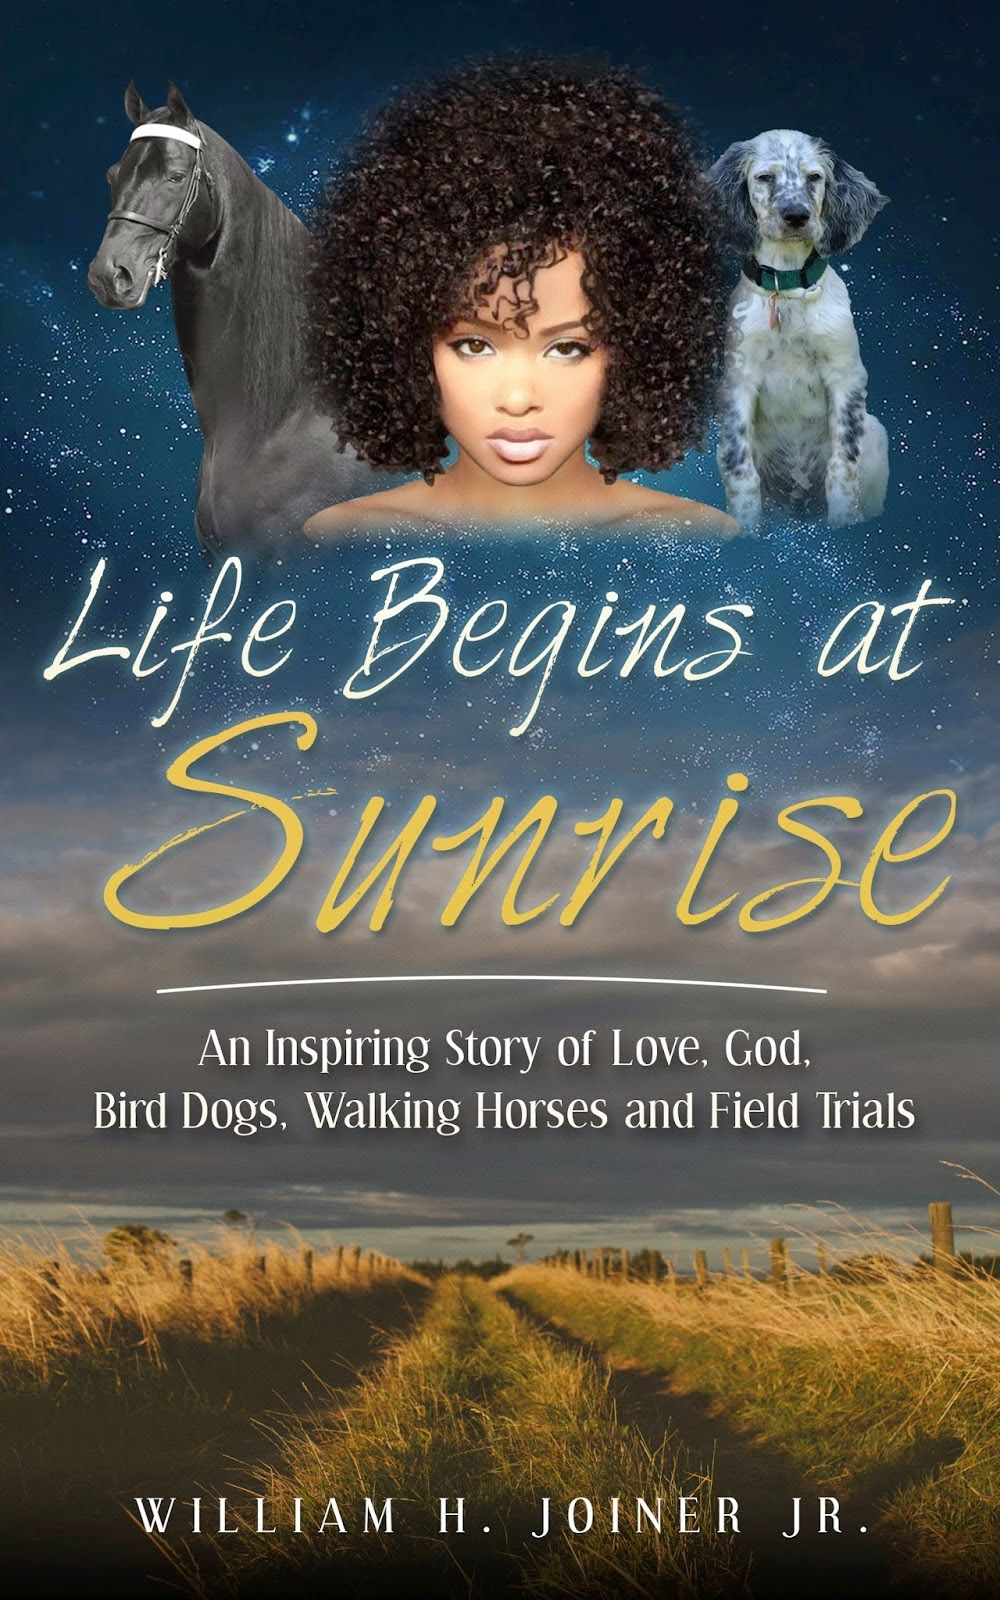 http://www.amazon.com/Life-Begins-Sunrise-Inspiring-Walking-ebook/dp/B00KLM7C3U/ref=sr_1_3?s=books&ie=UTF8&qid=1405380937&sr=1-3&keywords=William+Joiner